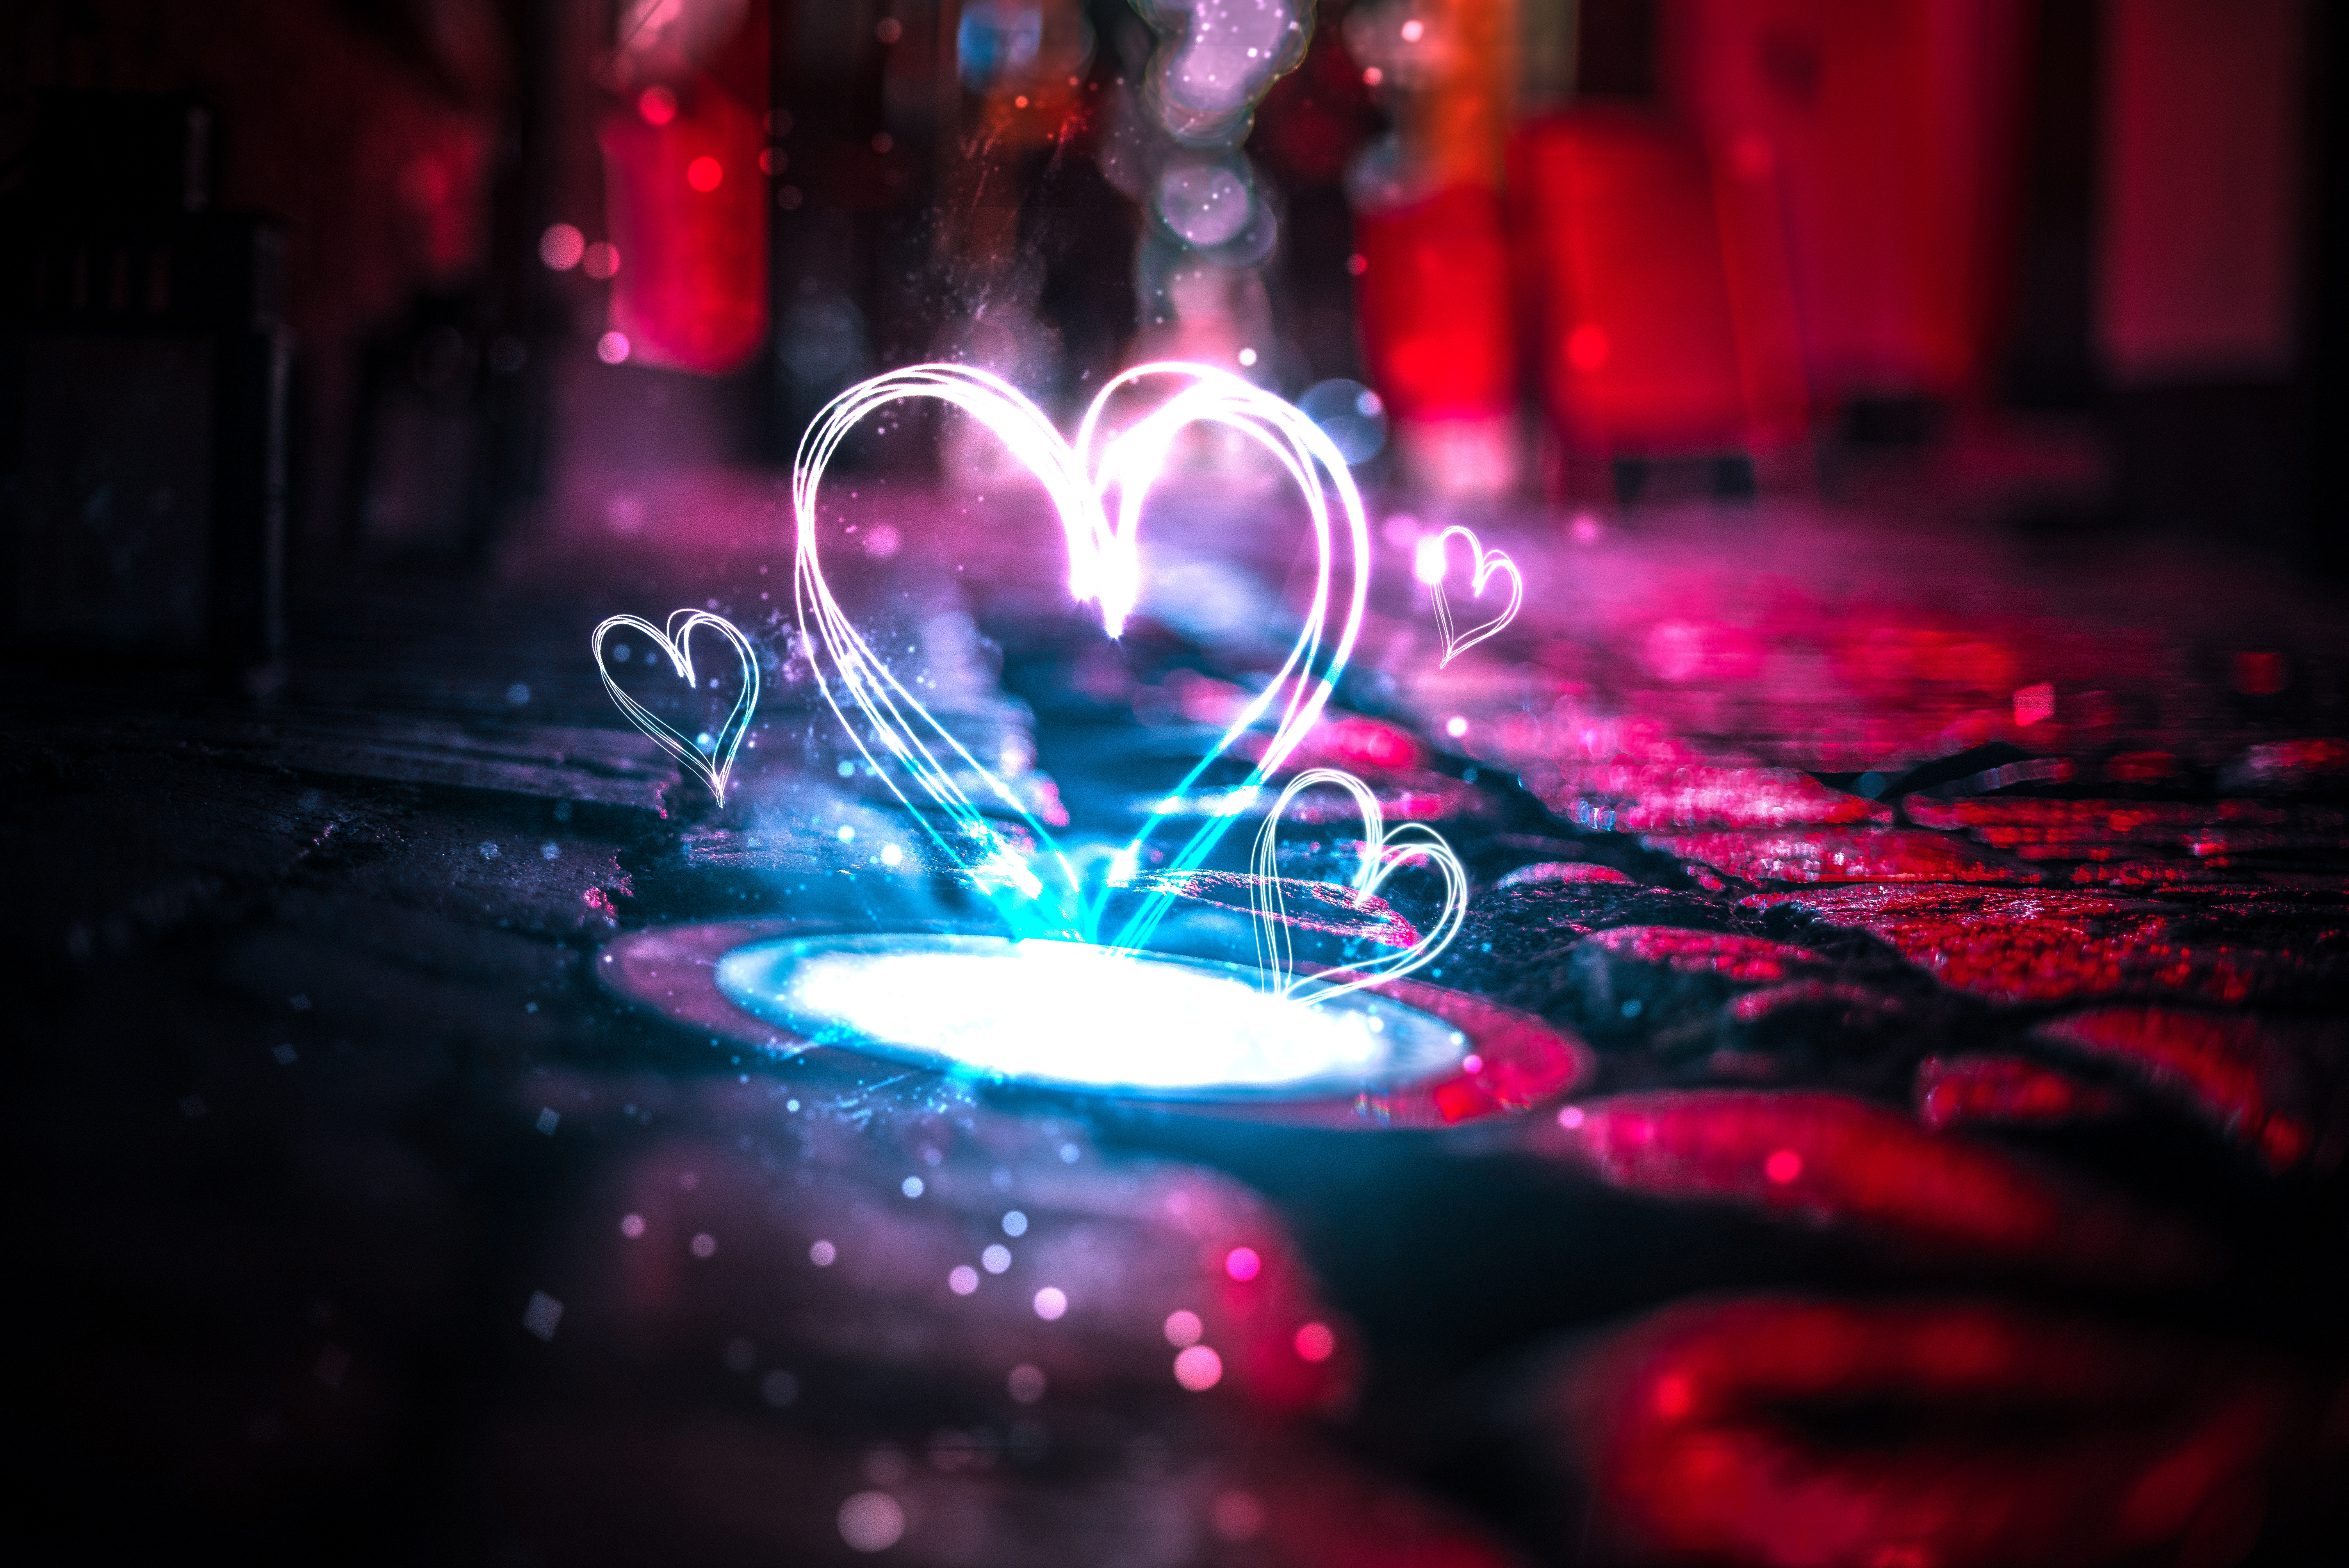 92926 download wallpaper Love, Heart, Shine, Light, Glare screensavers and pictures for free